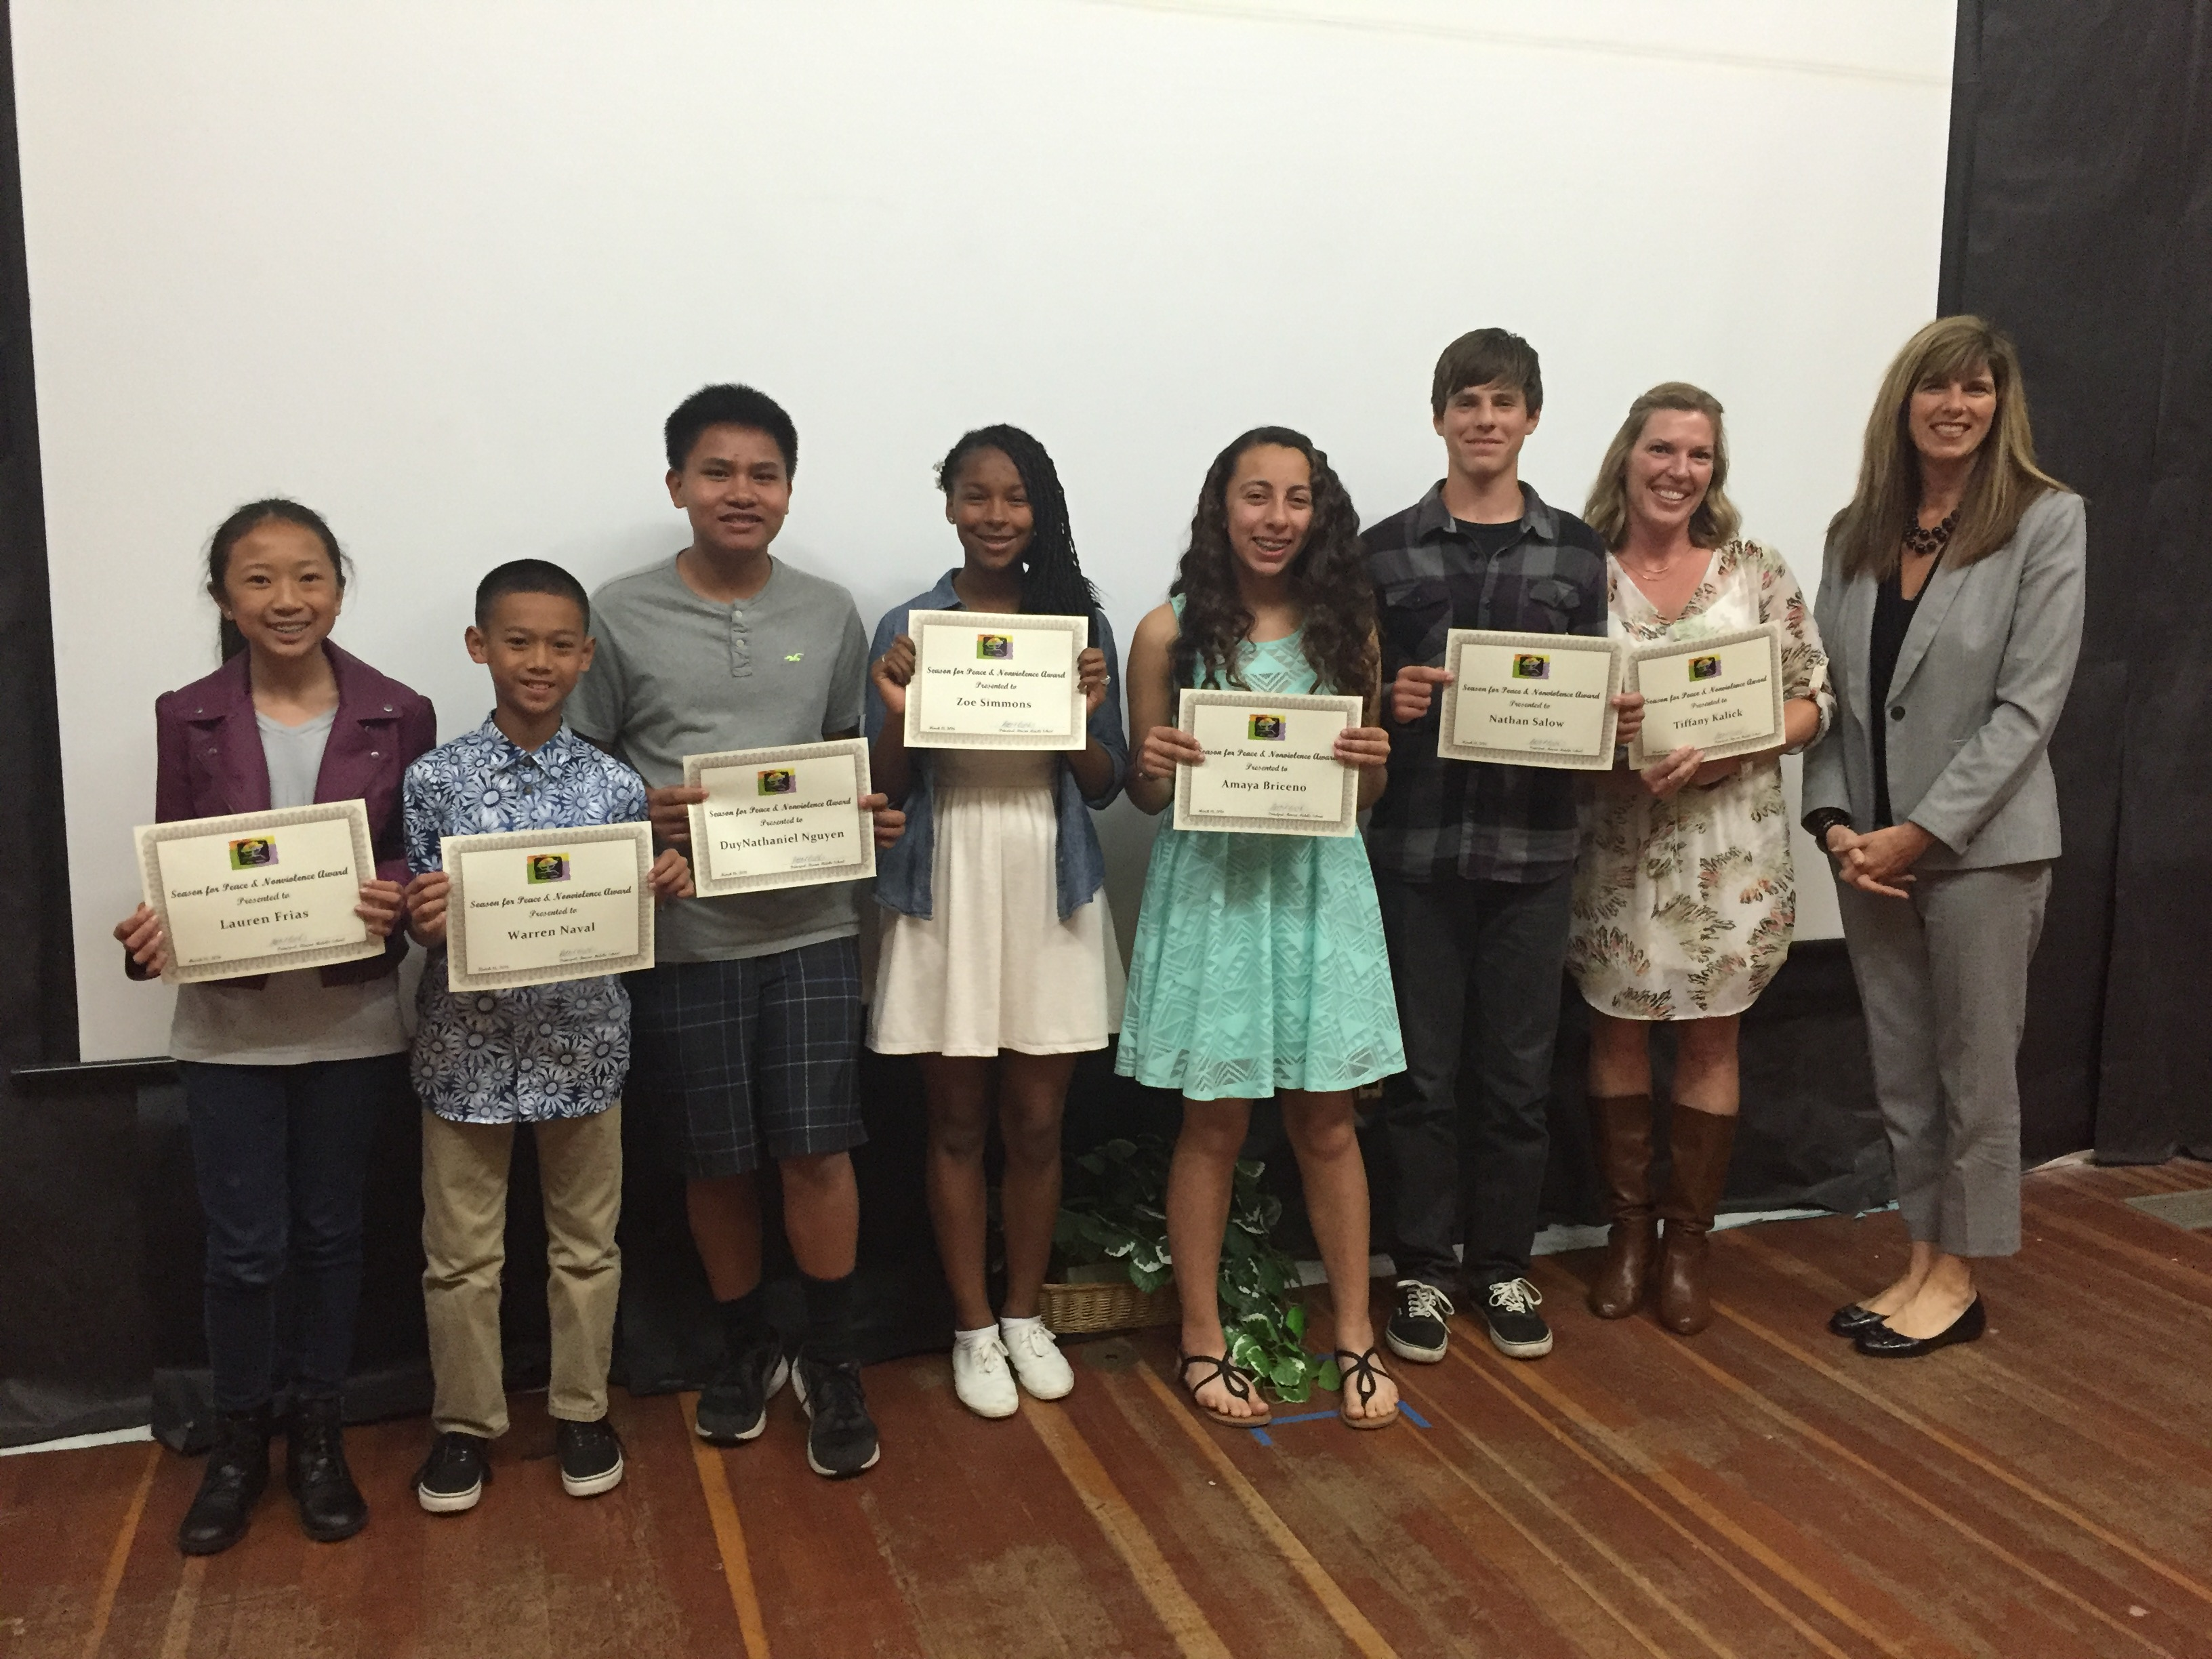 Recipients from Rincon Middle School with Principal Beth Crooks (far right).  From left to right:  Lauren Frias, Warren Naval, DuyNathaniel Nguyen, Zoe Simmons, Amaya Briceno, Nathan Salow, and Tiffany Kalick (school psychologist).